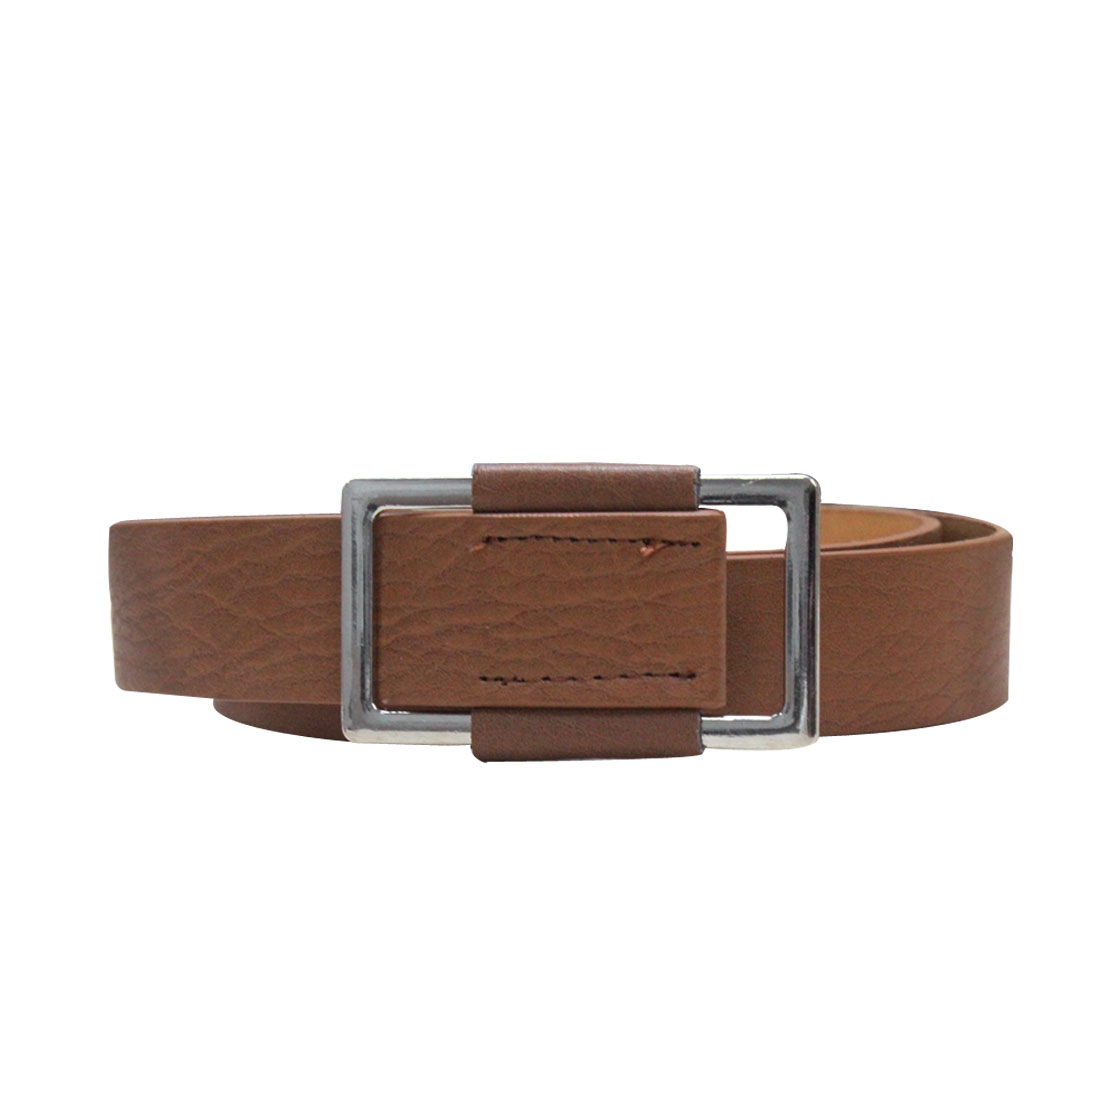 "Men Women Brown Faux Leather 1 1/8"" Width 41 1/2"" Length Stylish Belt Band"